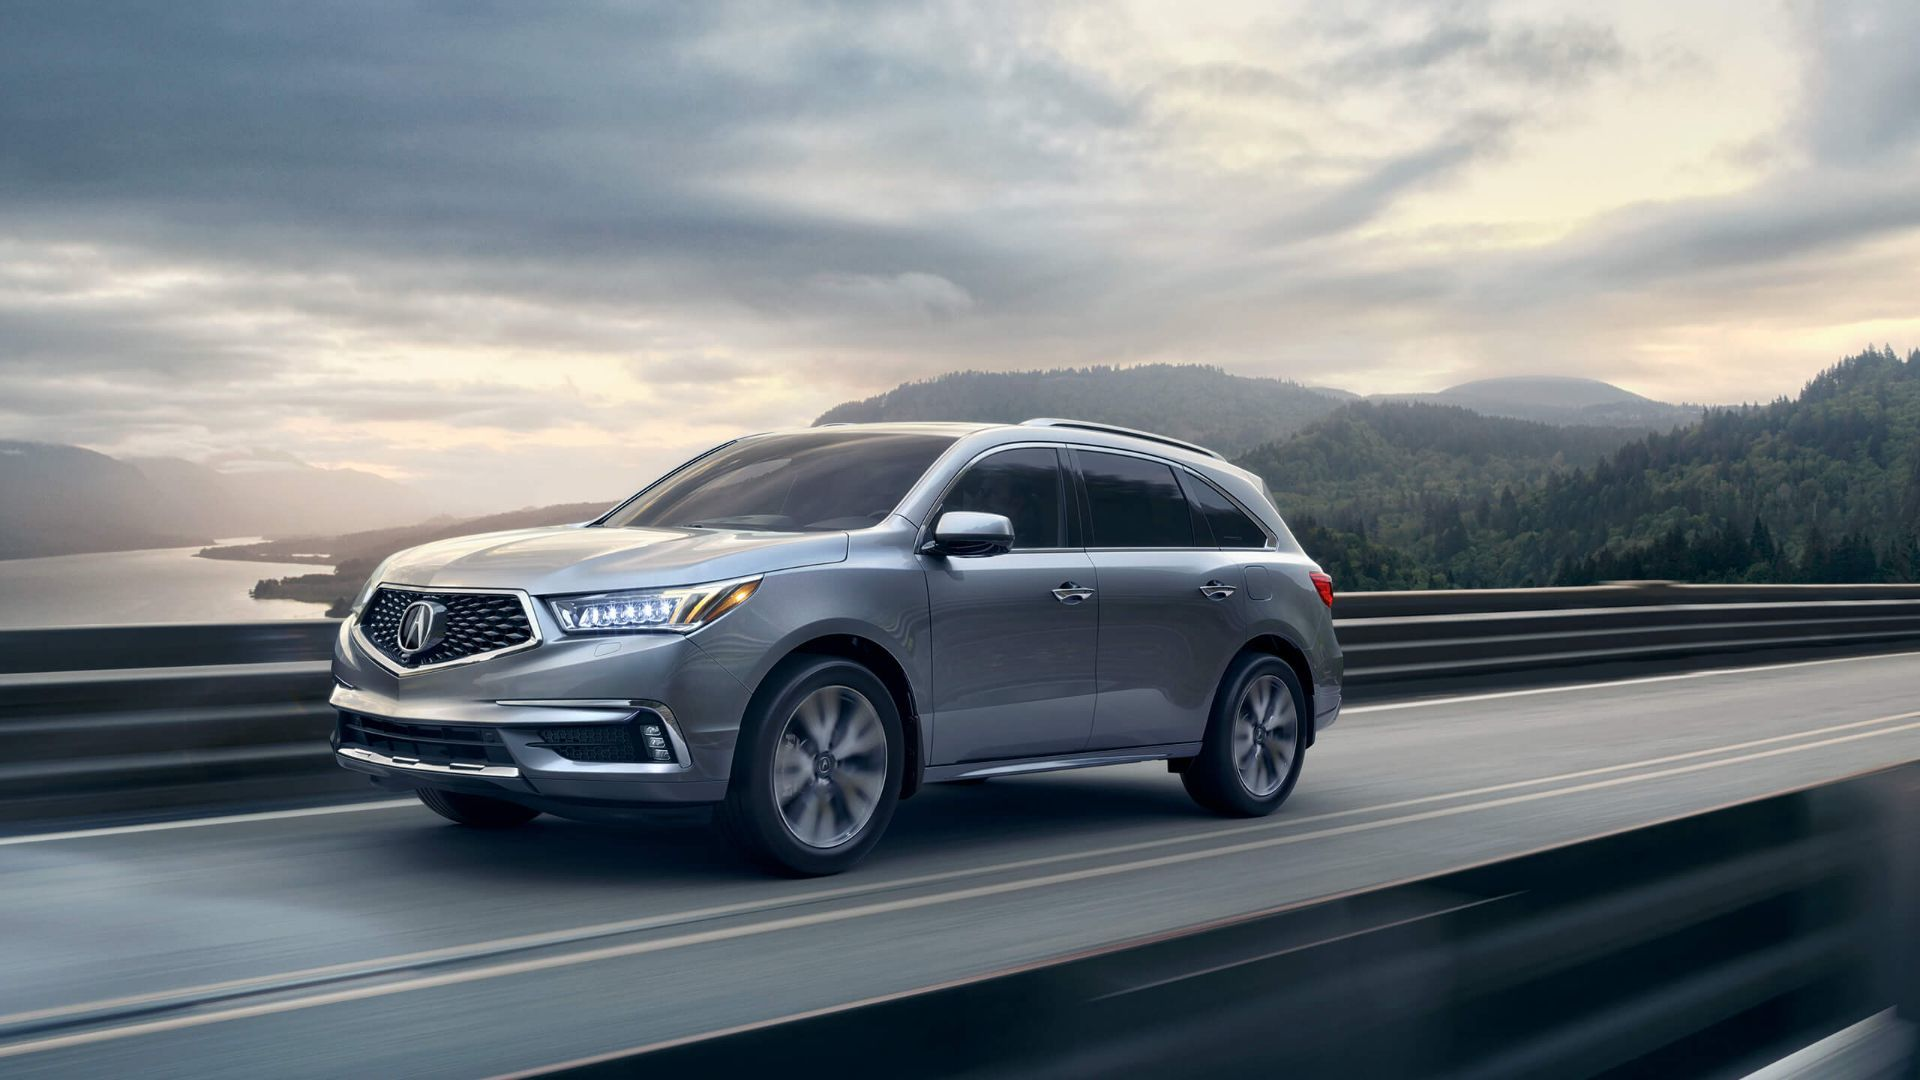 2019 Acura MDX: Seven-Passenger SUV Performance and Comfort